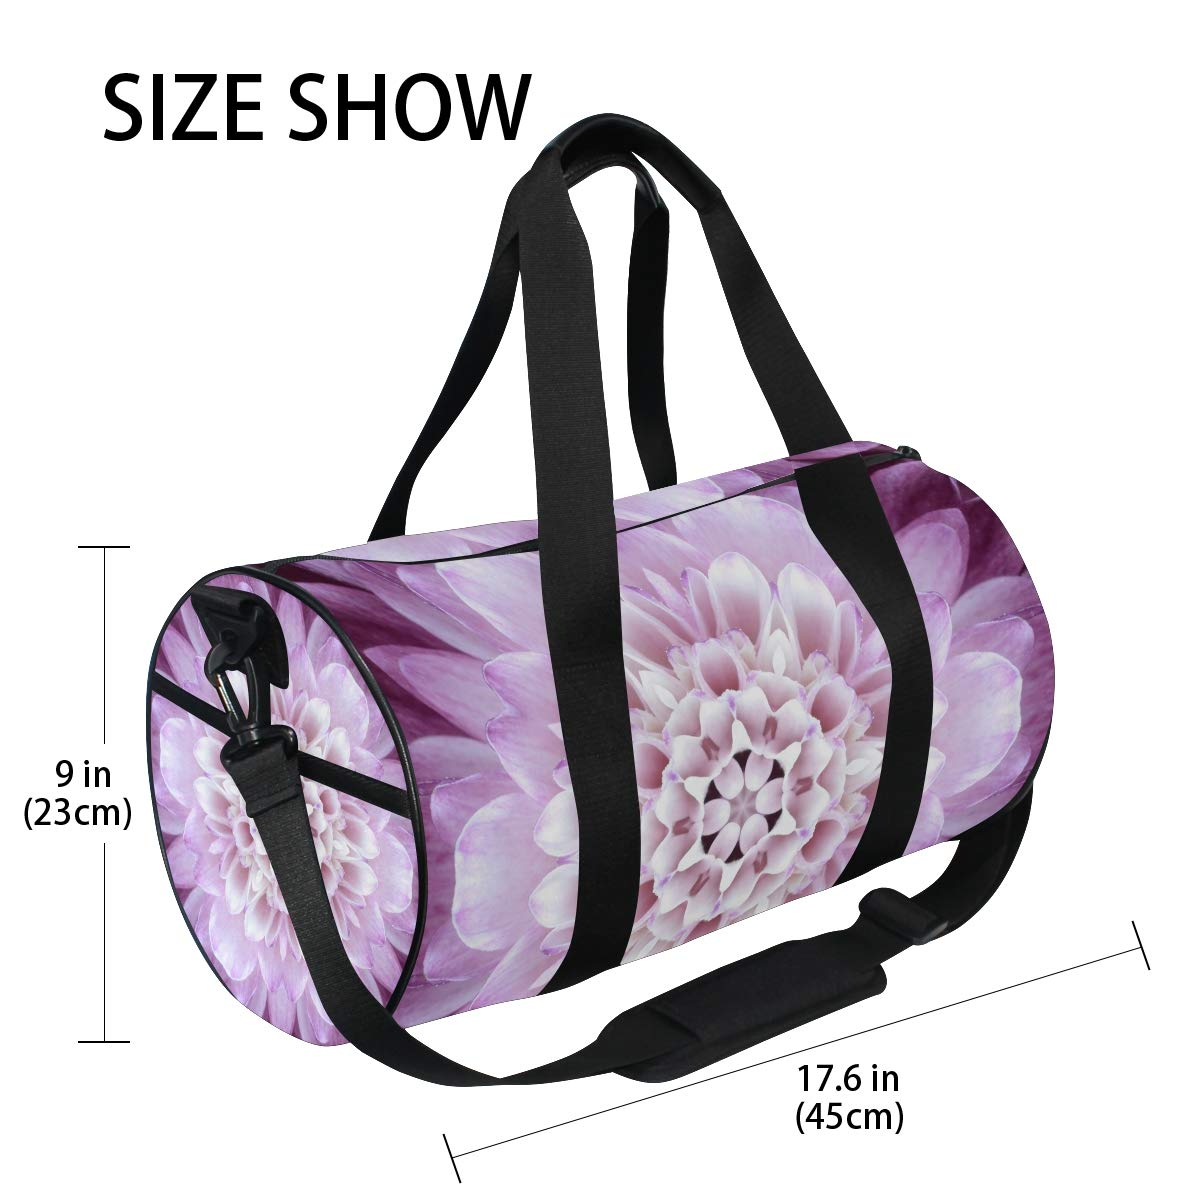 Mandala Bohemian Yoga Sports Gym Duffle Bags Tote Sling Travel Bag Patterned Canvas with Pocket and Zipper For Men Women Bag by EVERUI (Image #4)